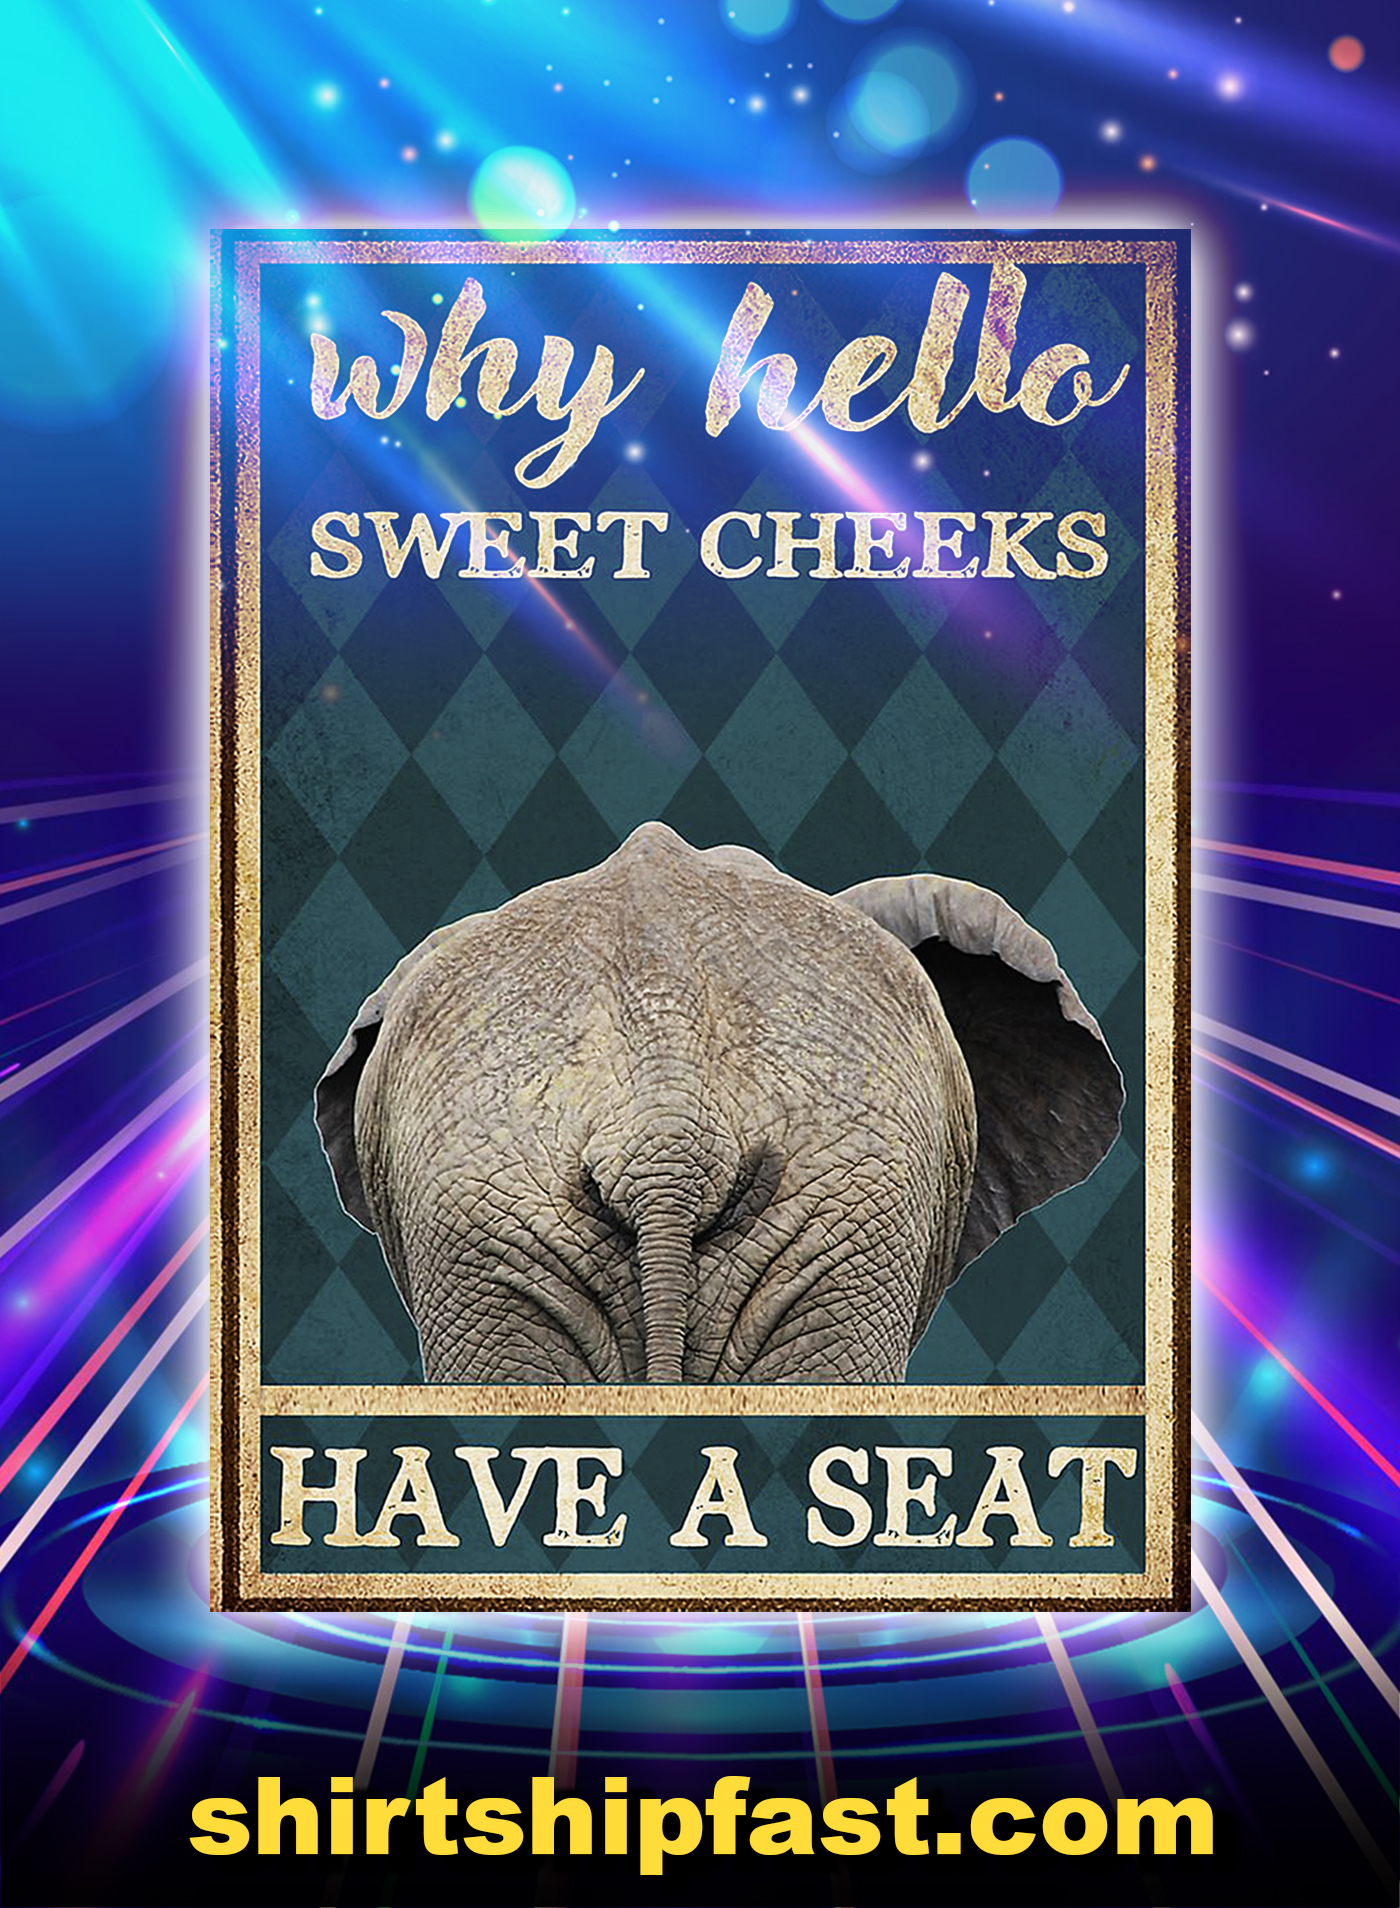 Elephant why hello sweet cheeks have a seat poster - A1